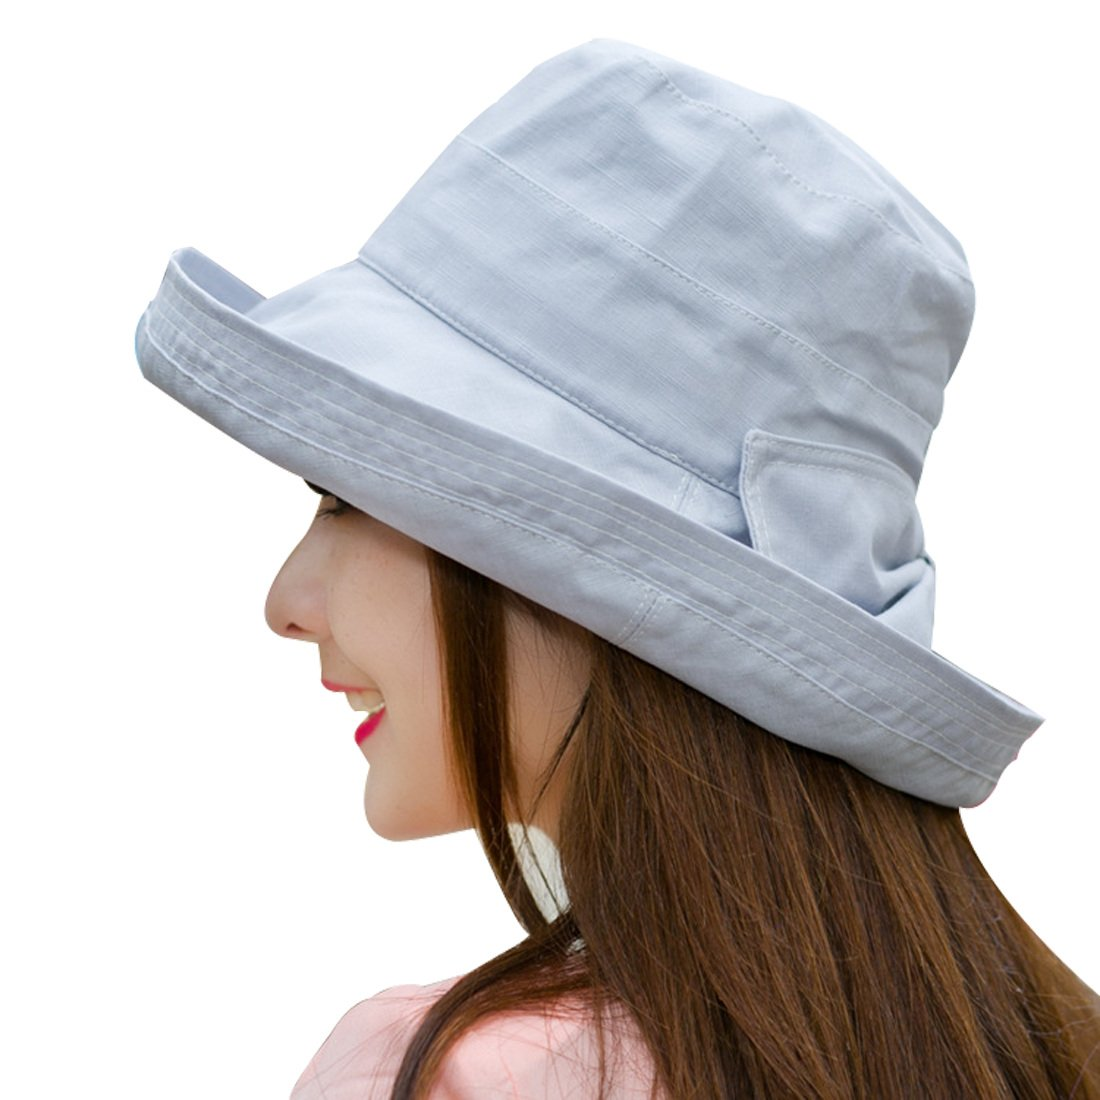 Kafeimali Women's Summer Sun Cotton Bucket Hat Wide Brim UV Protection Beach Caps XXMZ9